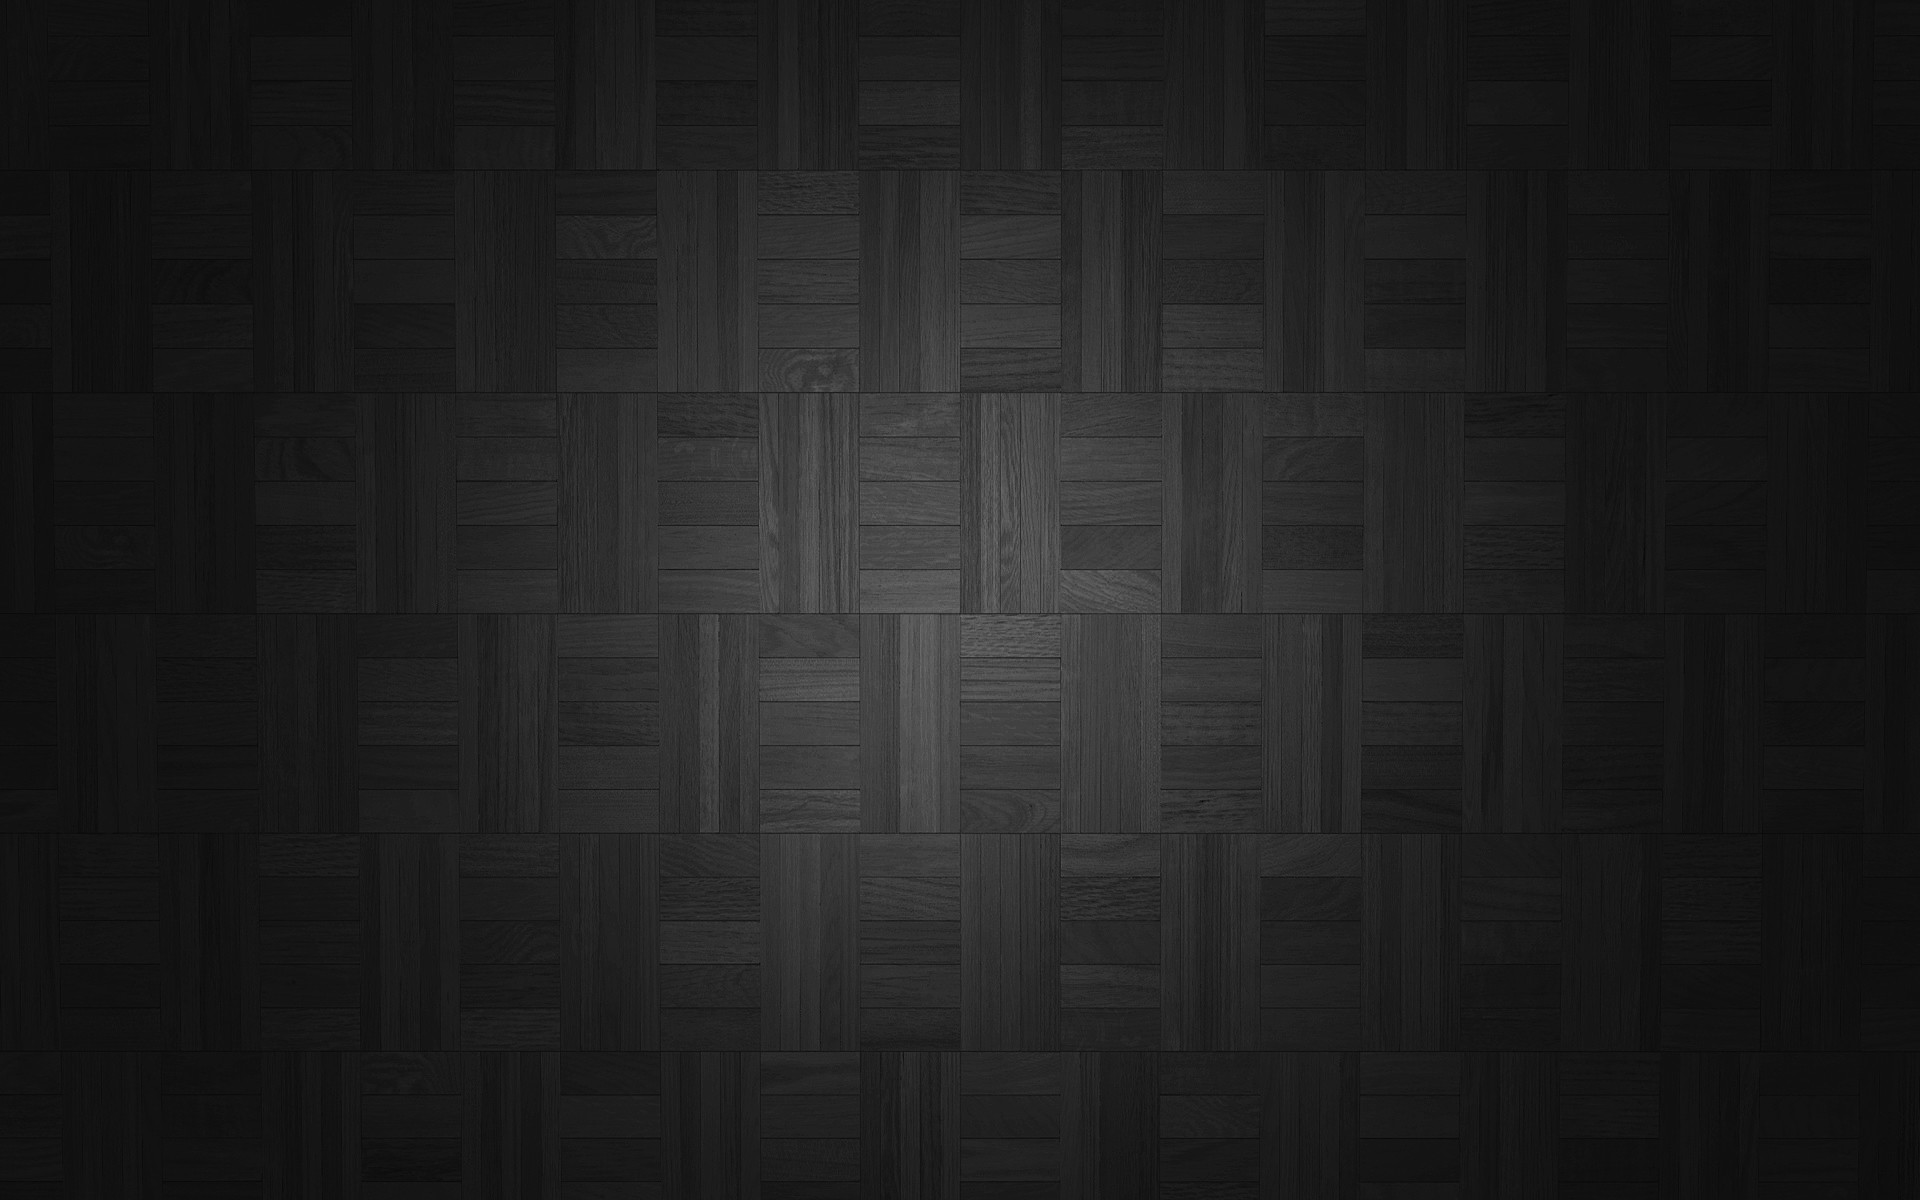 1920x1200 Black Floor Texture And Black Background Wallpaper X Black Background Black  Floor Texture And Download Black Flooring Texture High Quality ...